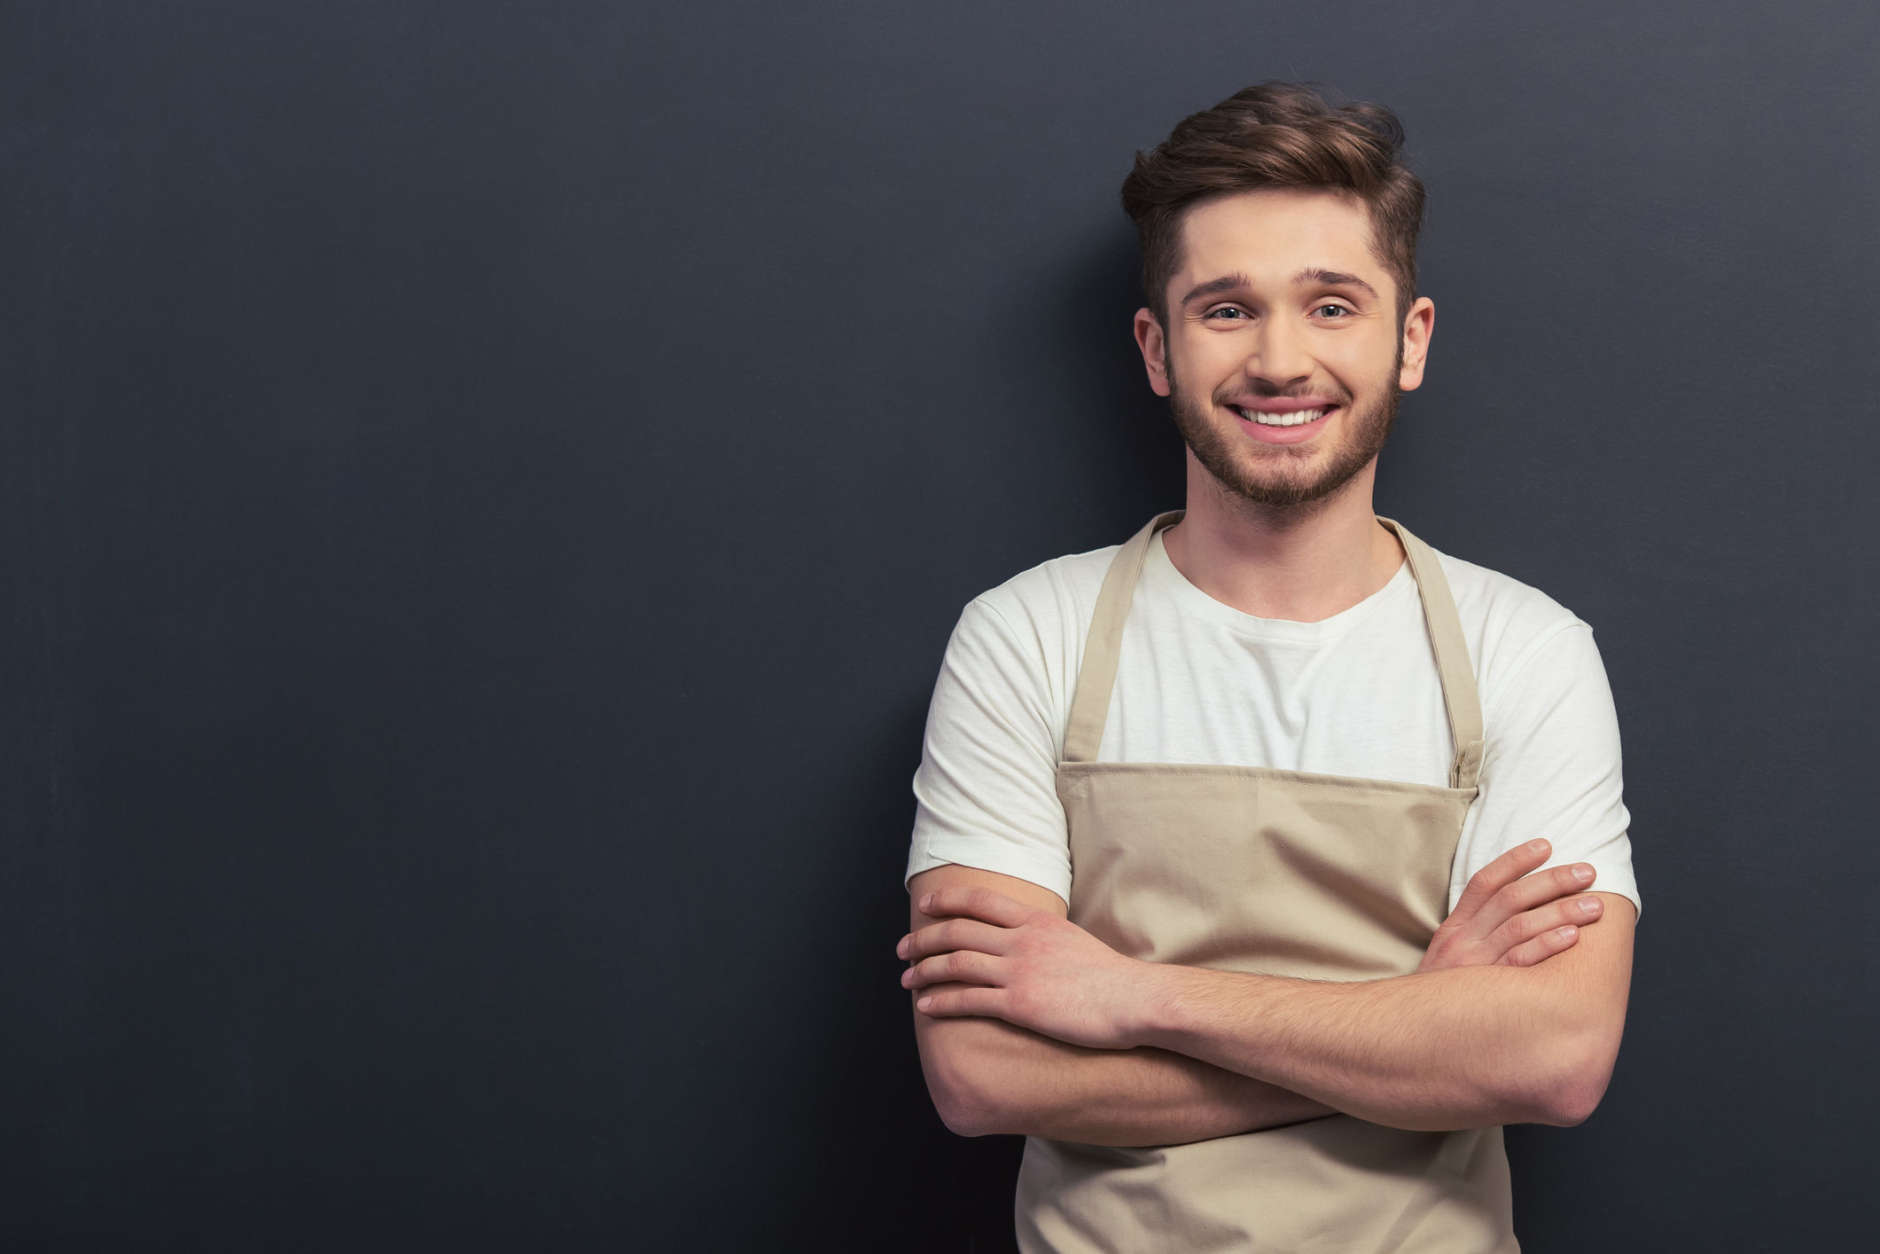 Handsome young man in apron is looking at camera and smiling, standing with crossed arms against blackboard